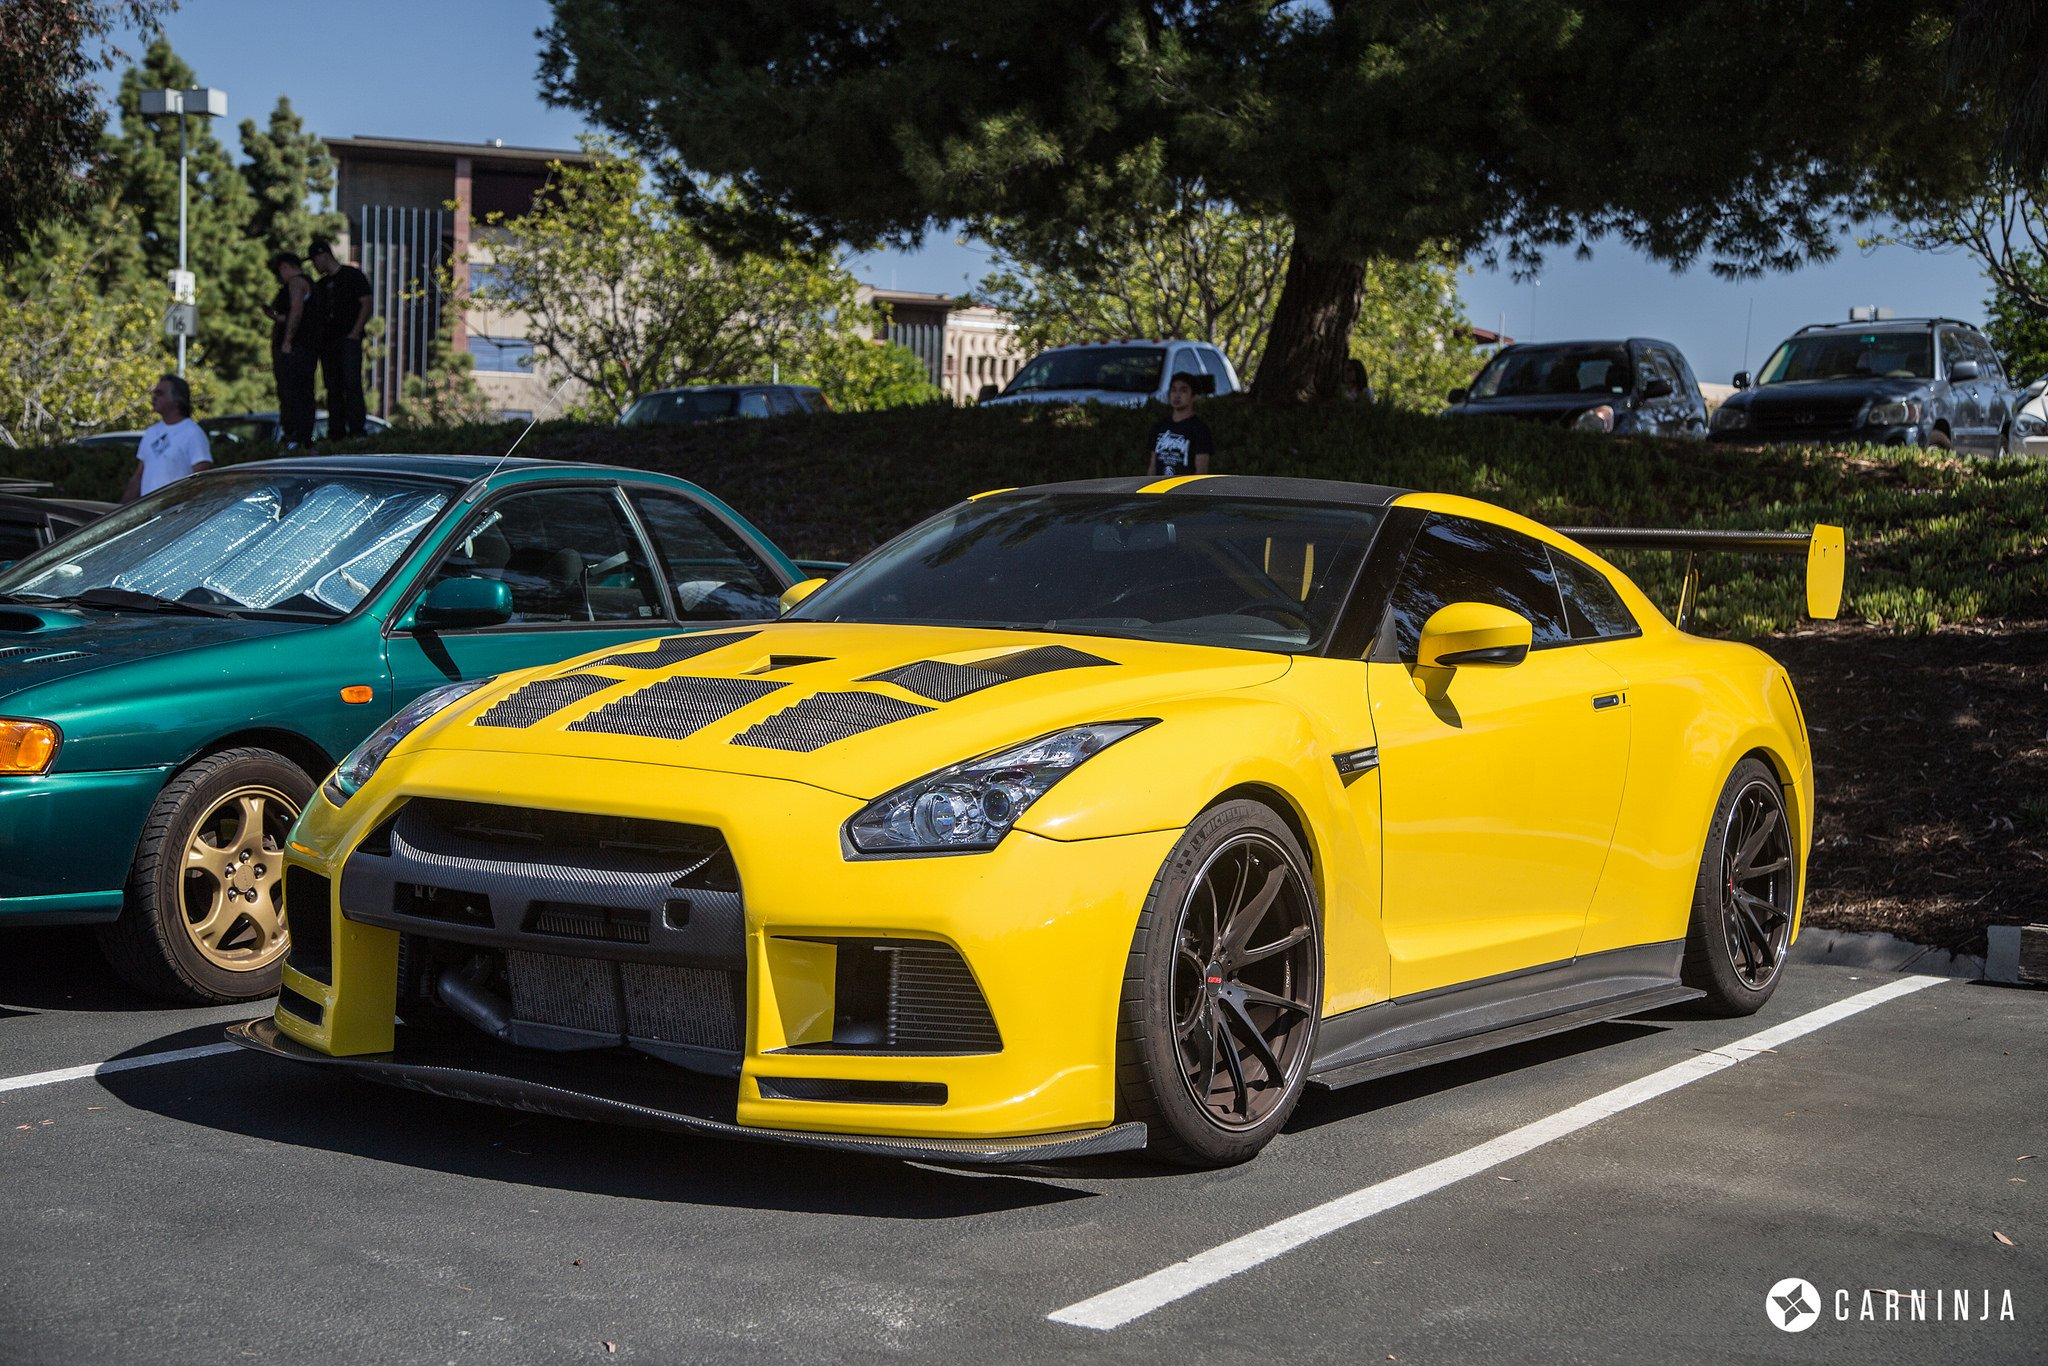 nissan gtr body kit coupe cars wallpaper 2048x1366 642159 wallpaperup. Black Bedroom Furniture Sets. Home Design Ideas